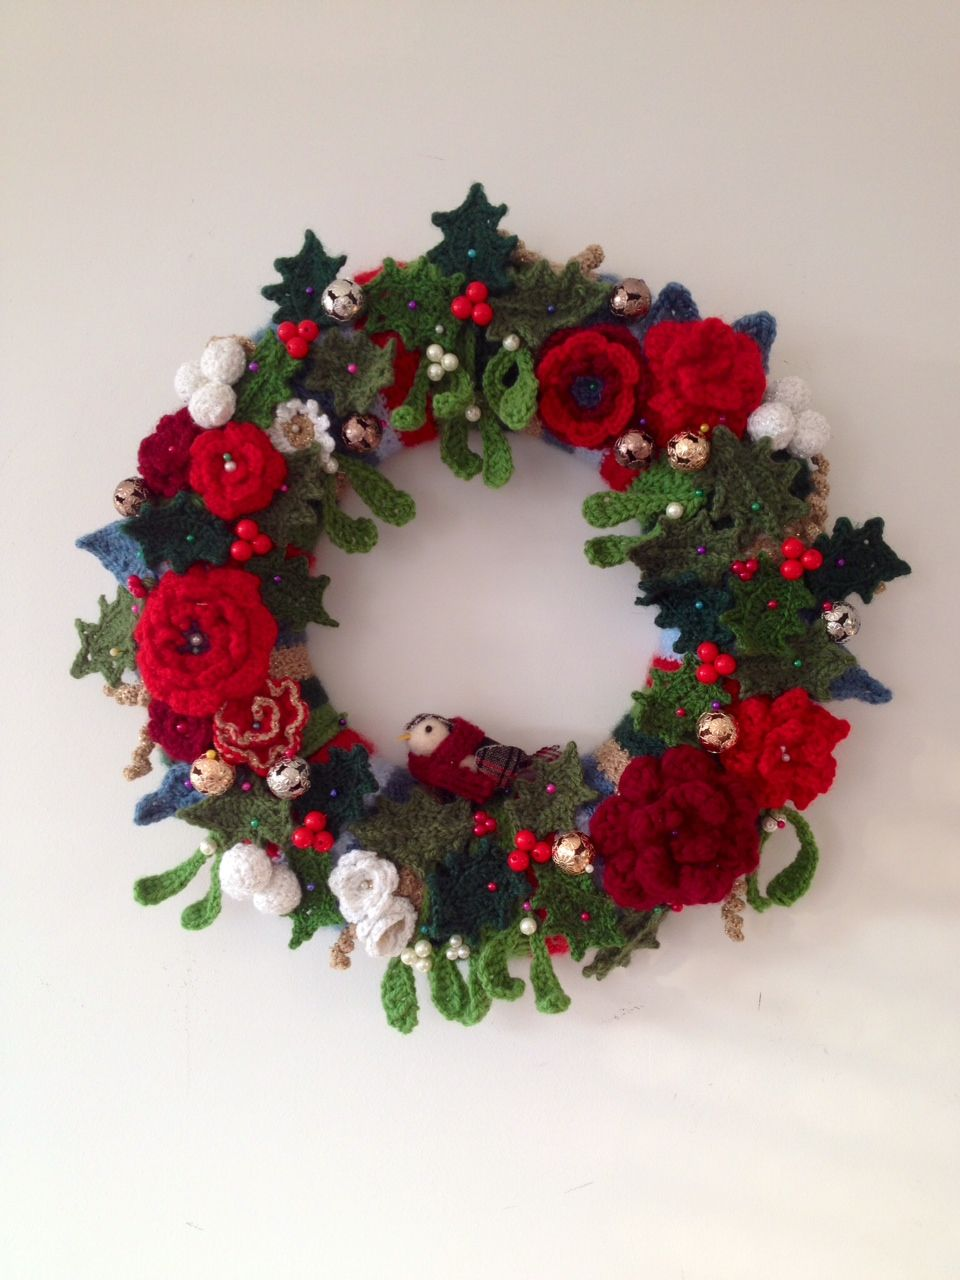 Christmas crochet wreath made by emily ballard and inspired by lucy of attic24 christmas ideas - Decoration au crochet ...